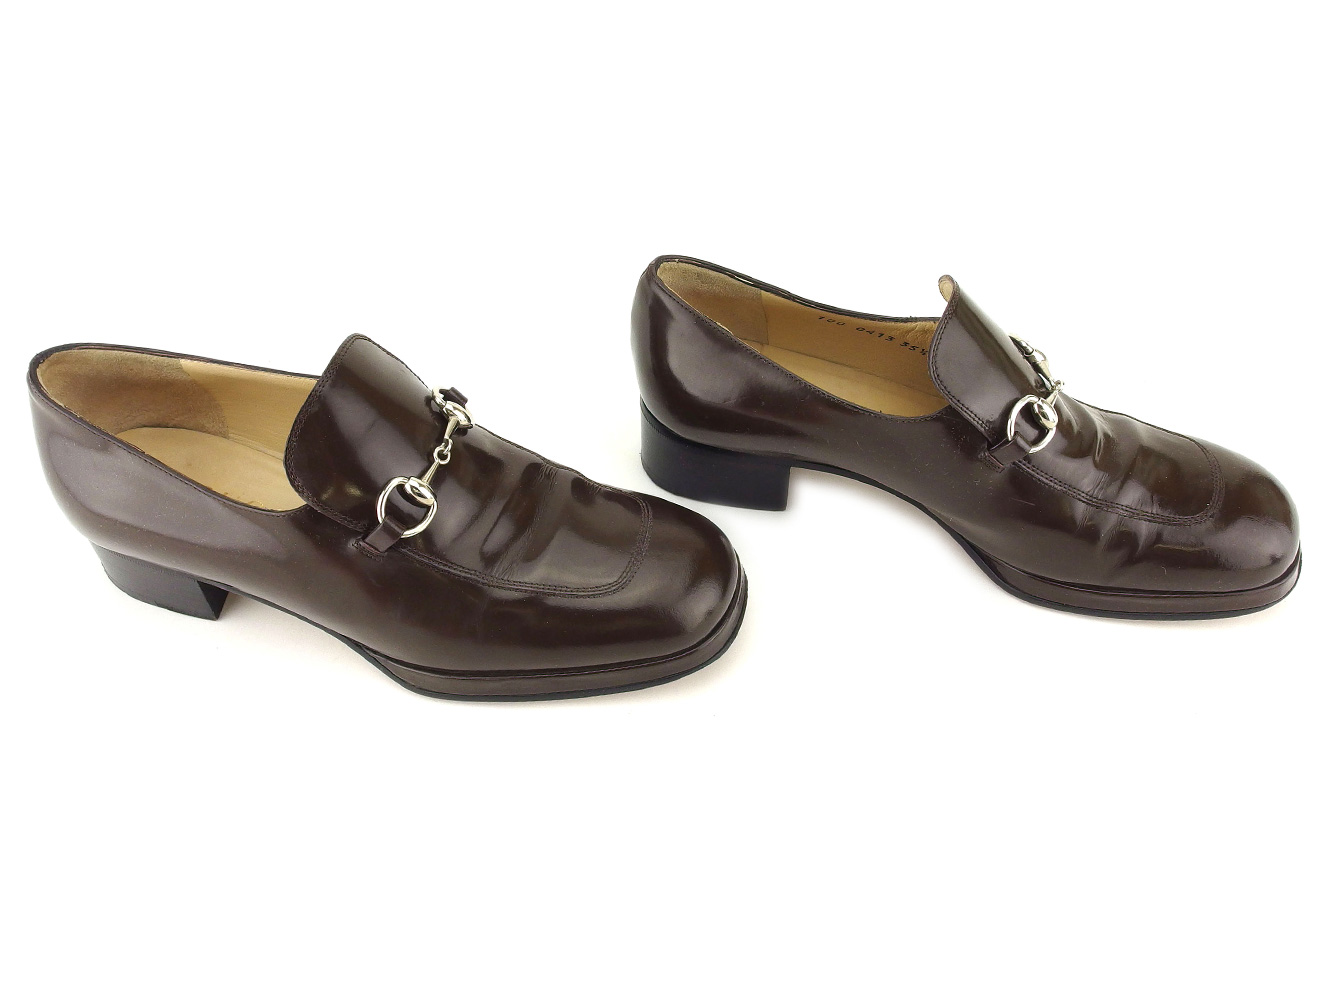 cb187047d Gucci GUCCI loafer shoes shoes Lady's ♯ 35 half C hose bit brown silver  leather popularity sale L2835. . Used - Acceptable. Details